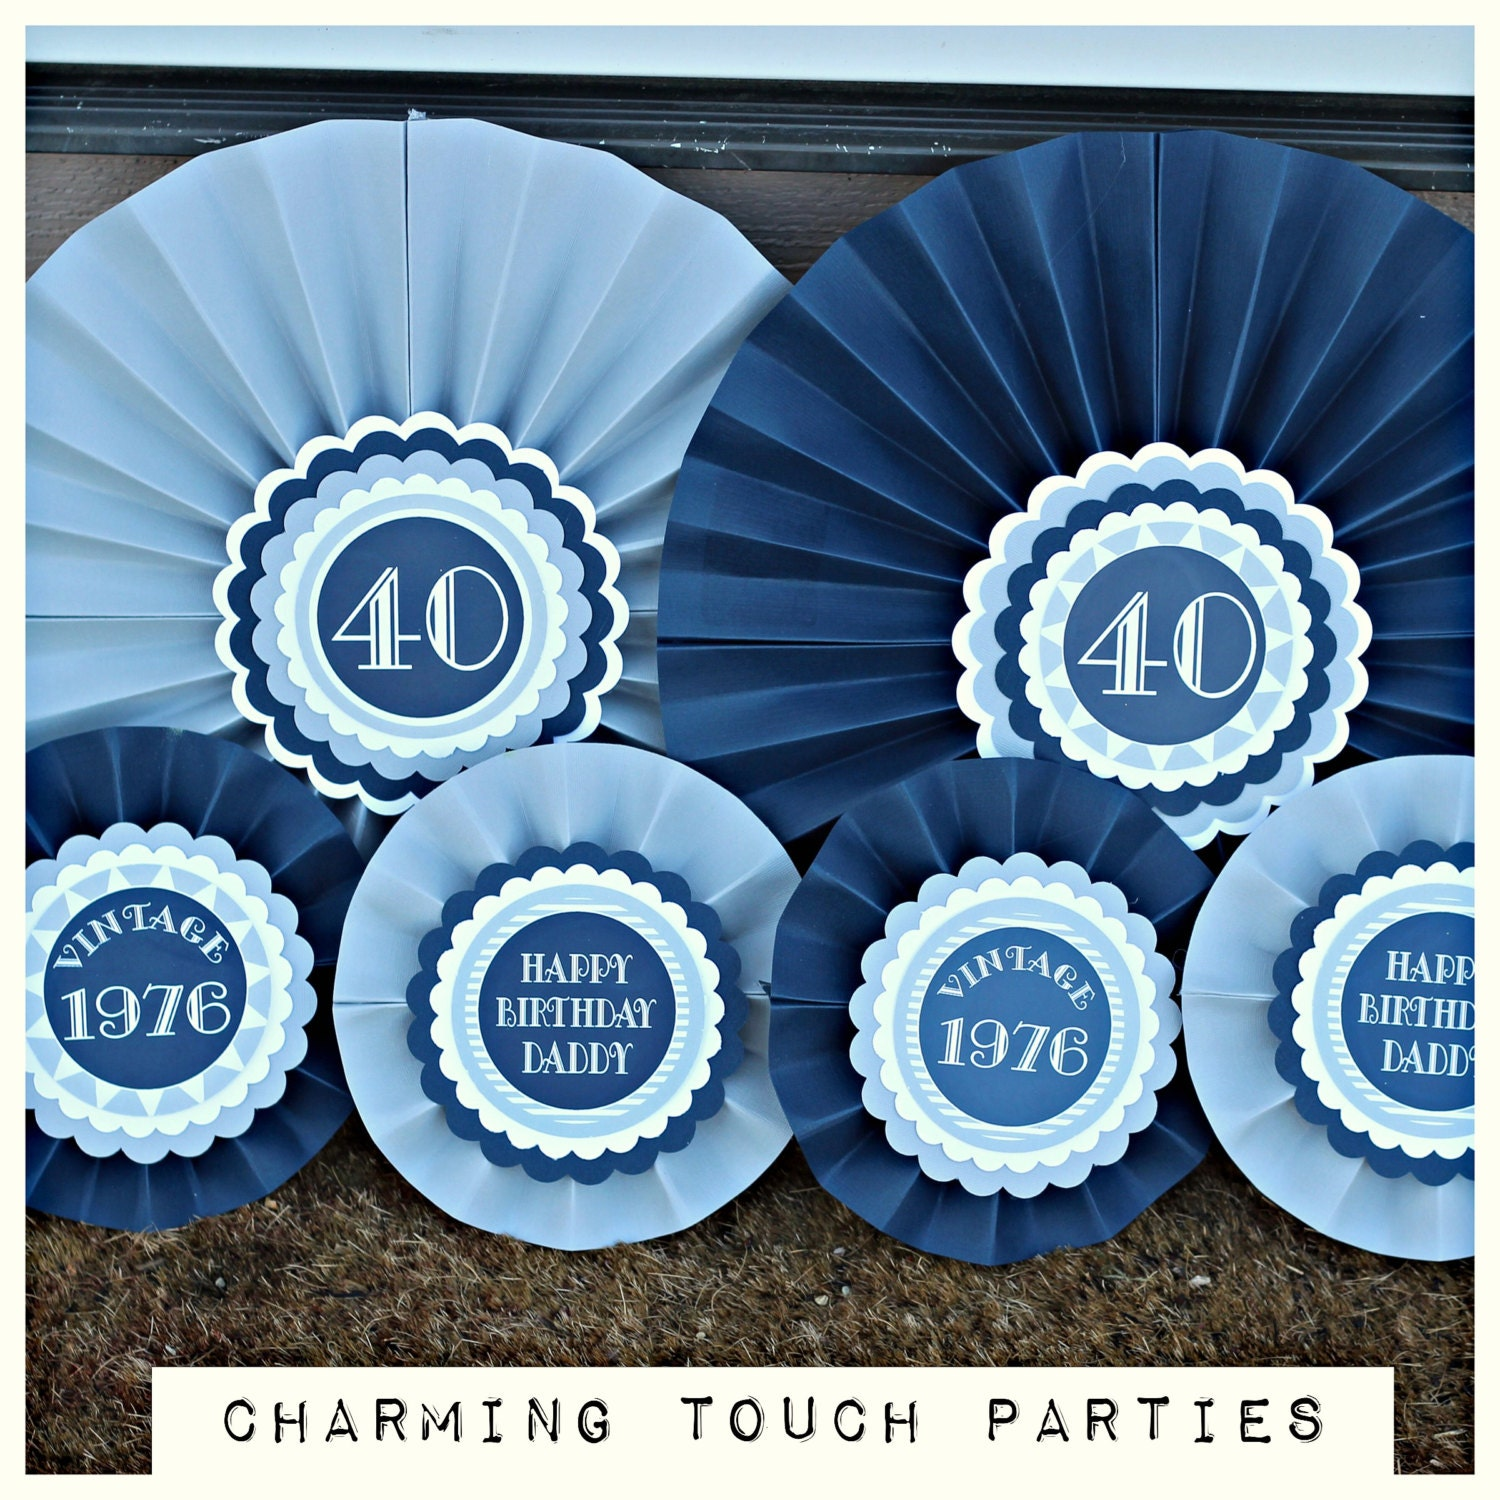 40th birthday party decorations decorative rosettes paper for 40th birthday decoration